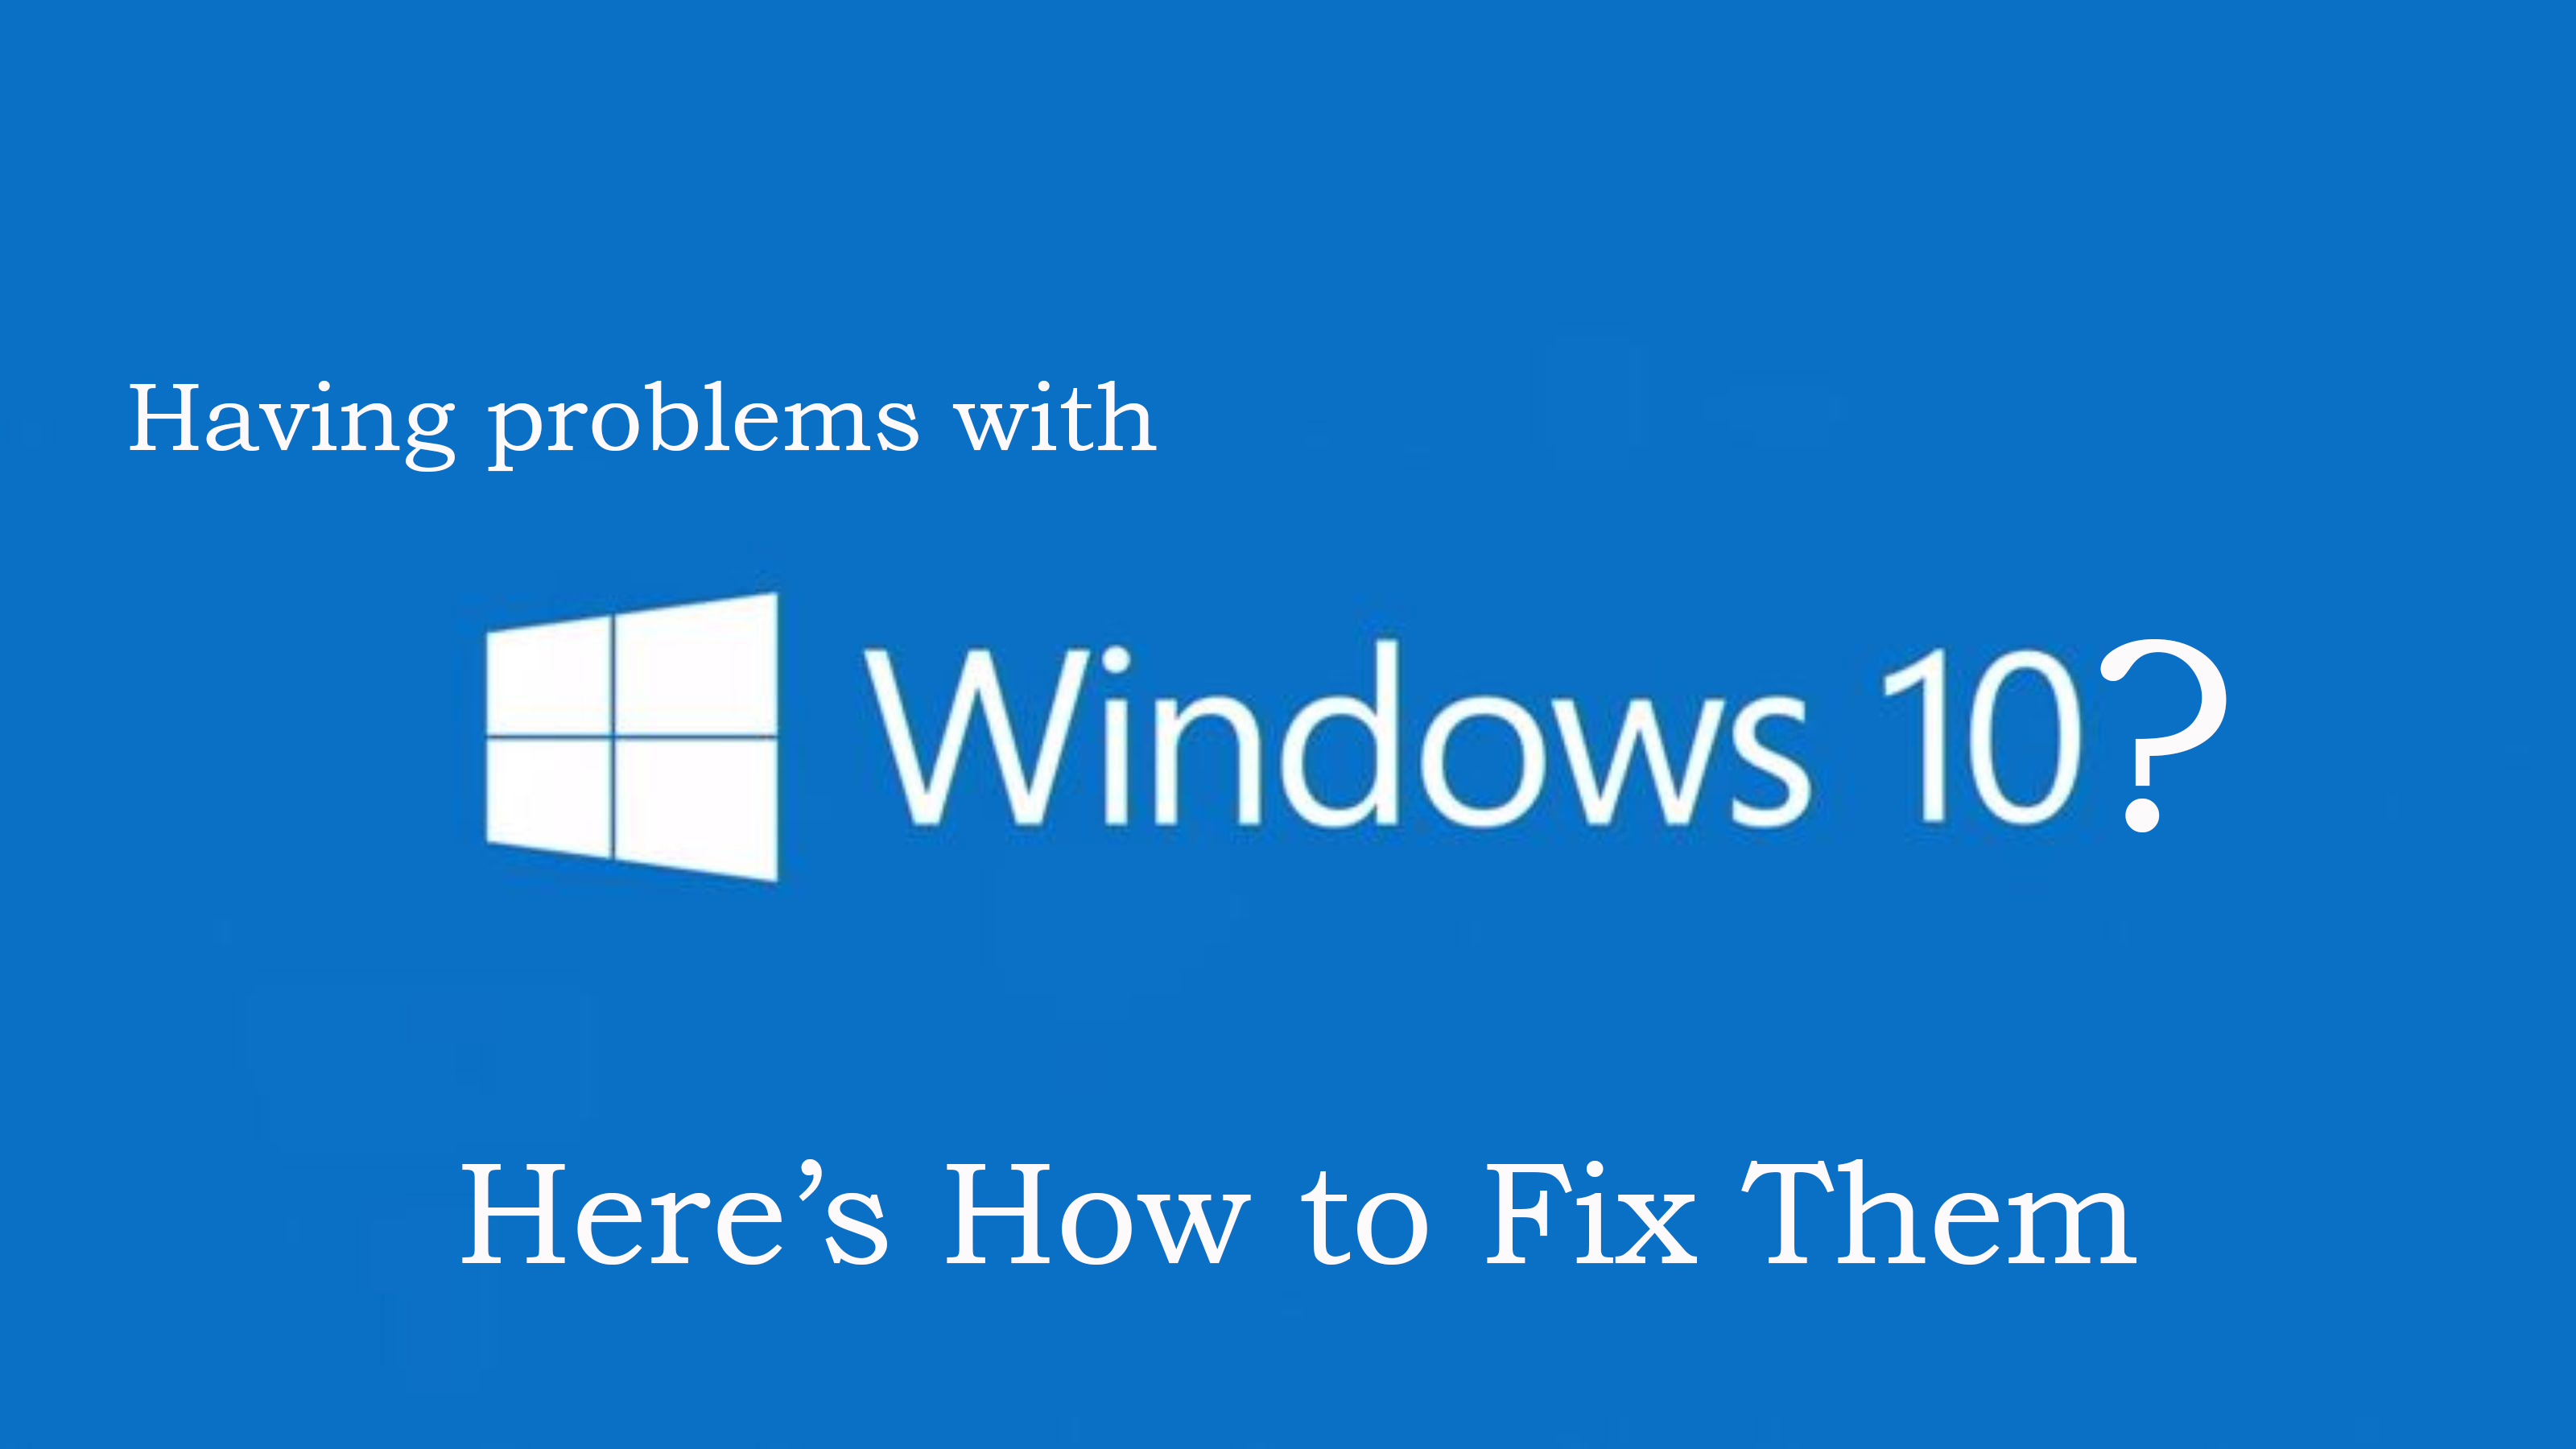 10 Annoying Windows 10 Issues with Their Troubleshooting Tips